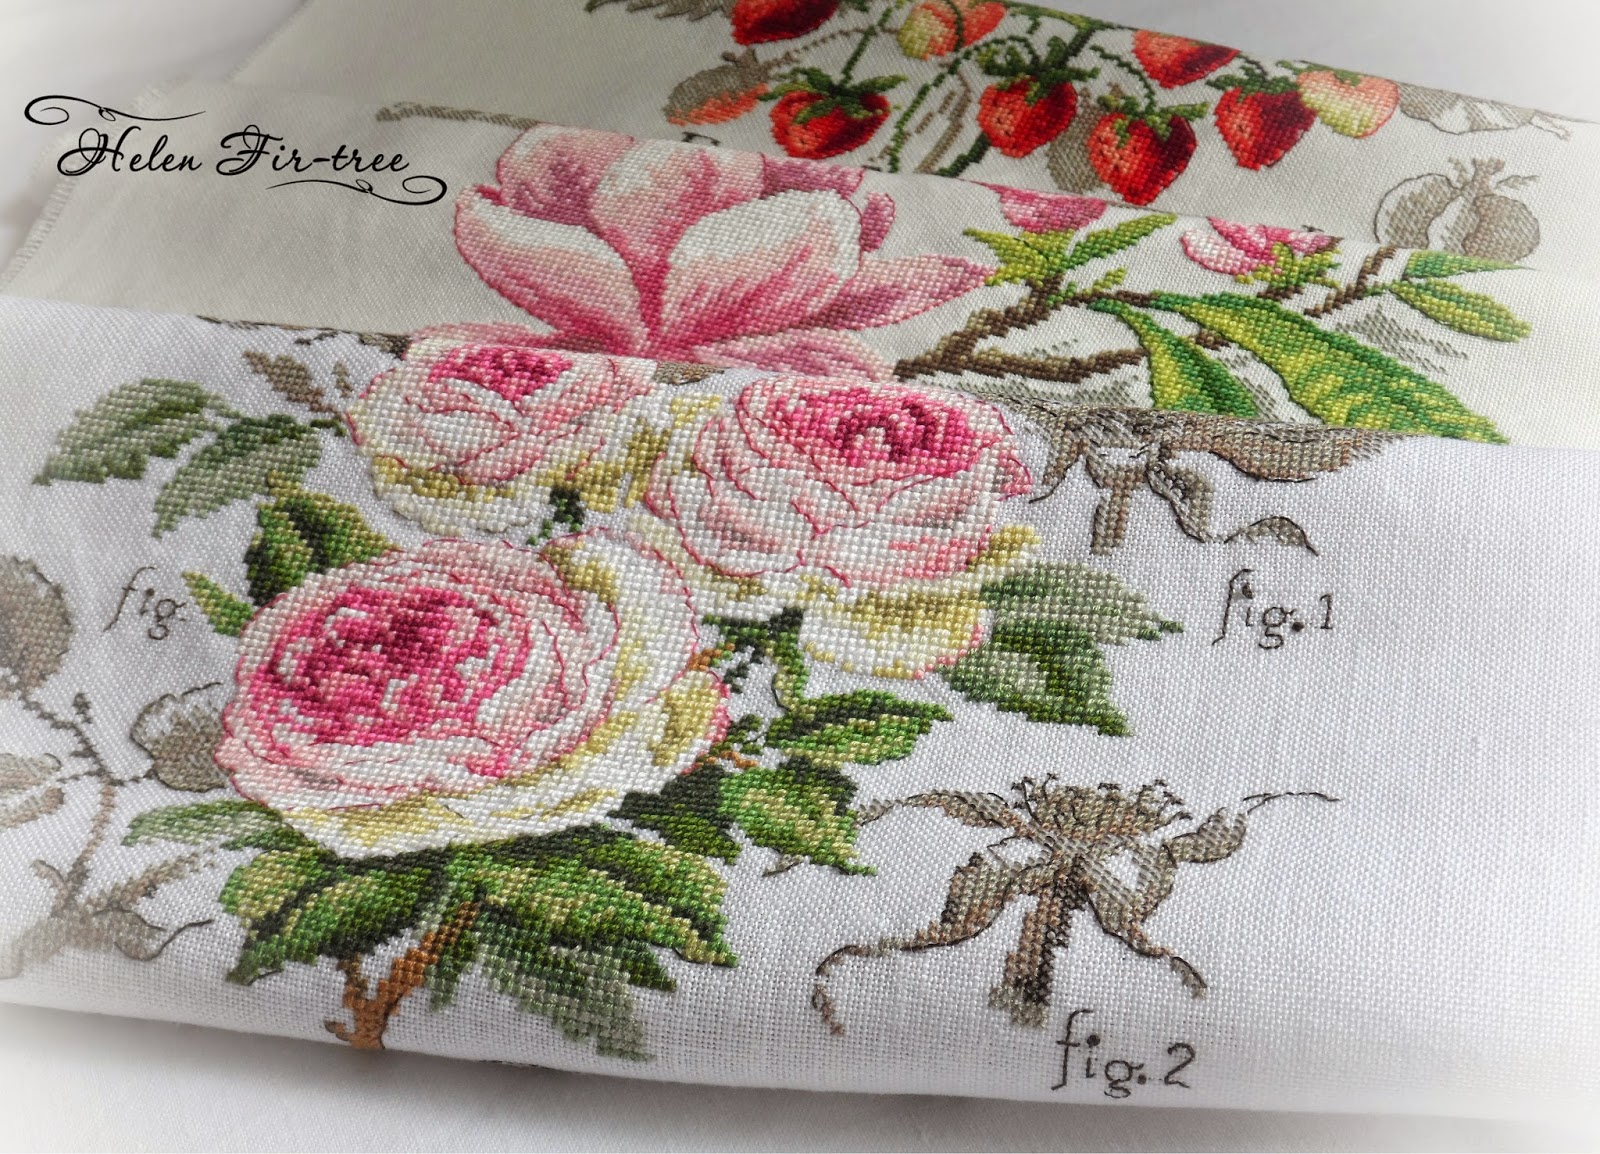 Helen Fir-tree вышивка крестом розы V. Enginger stitch roses  V. Enginger